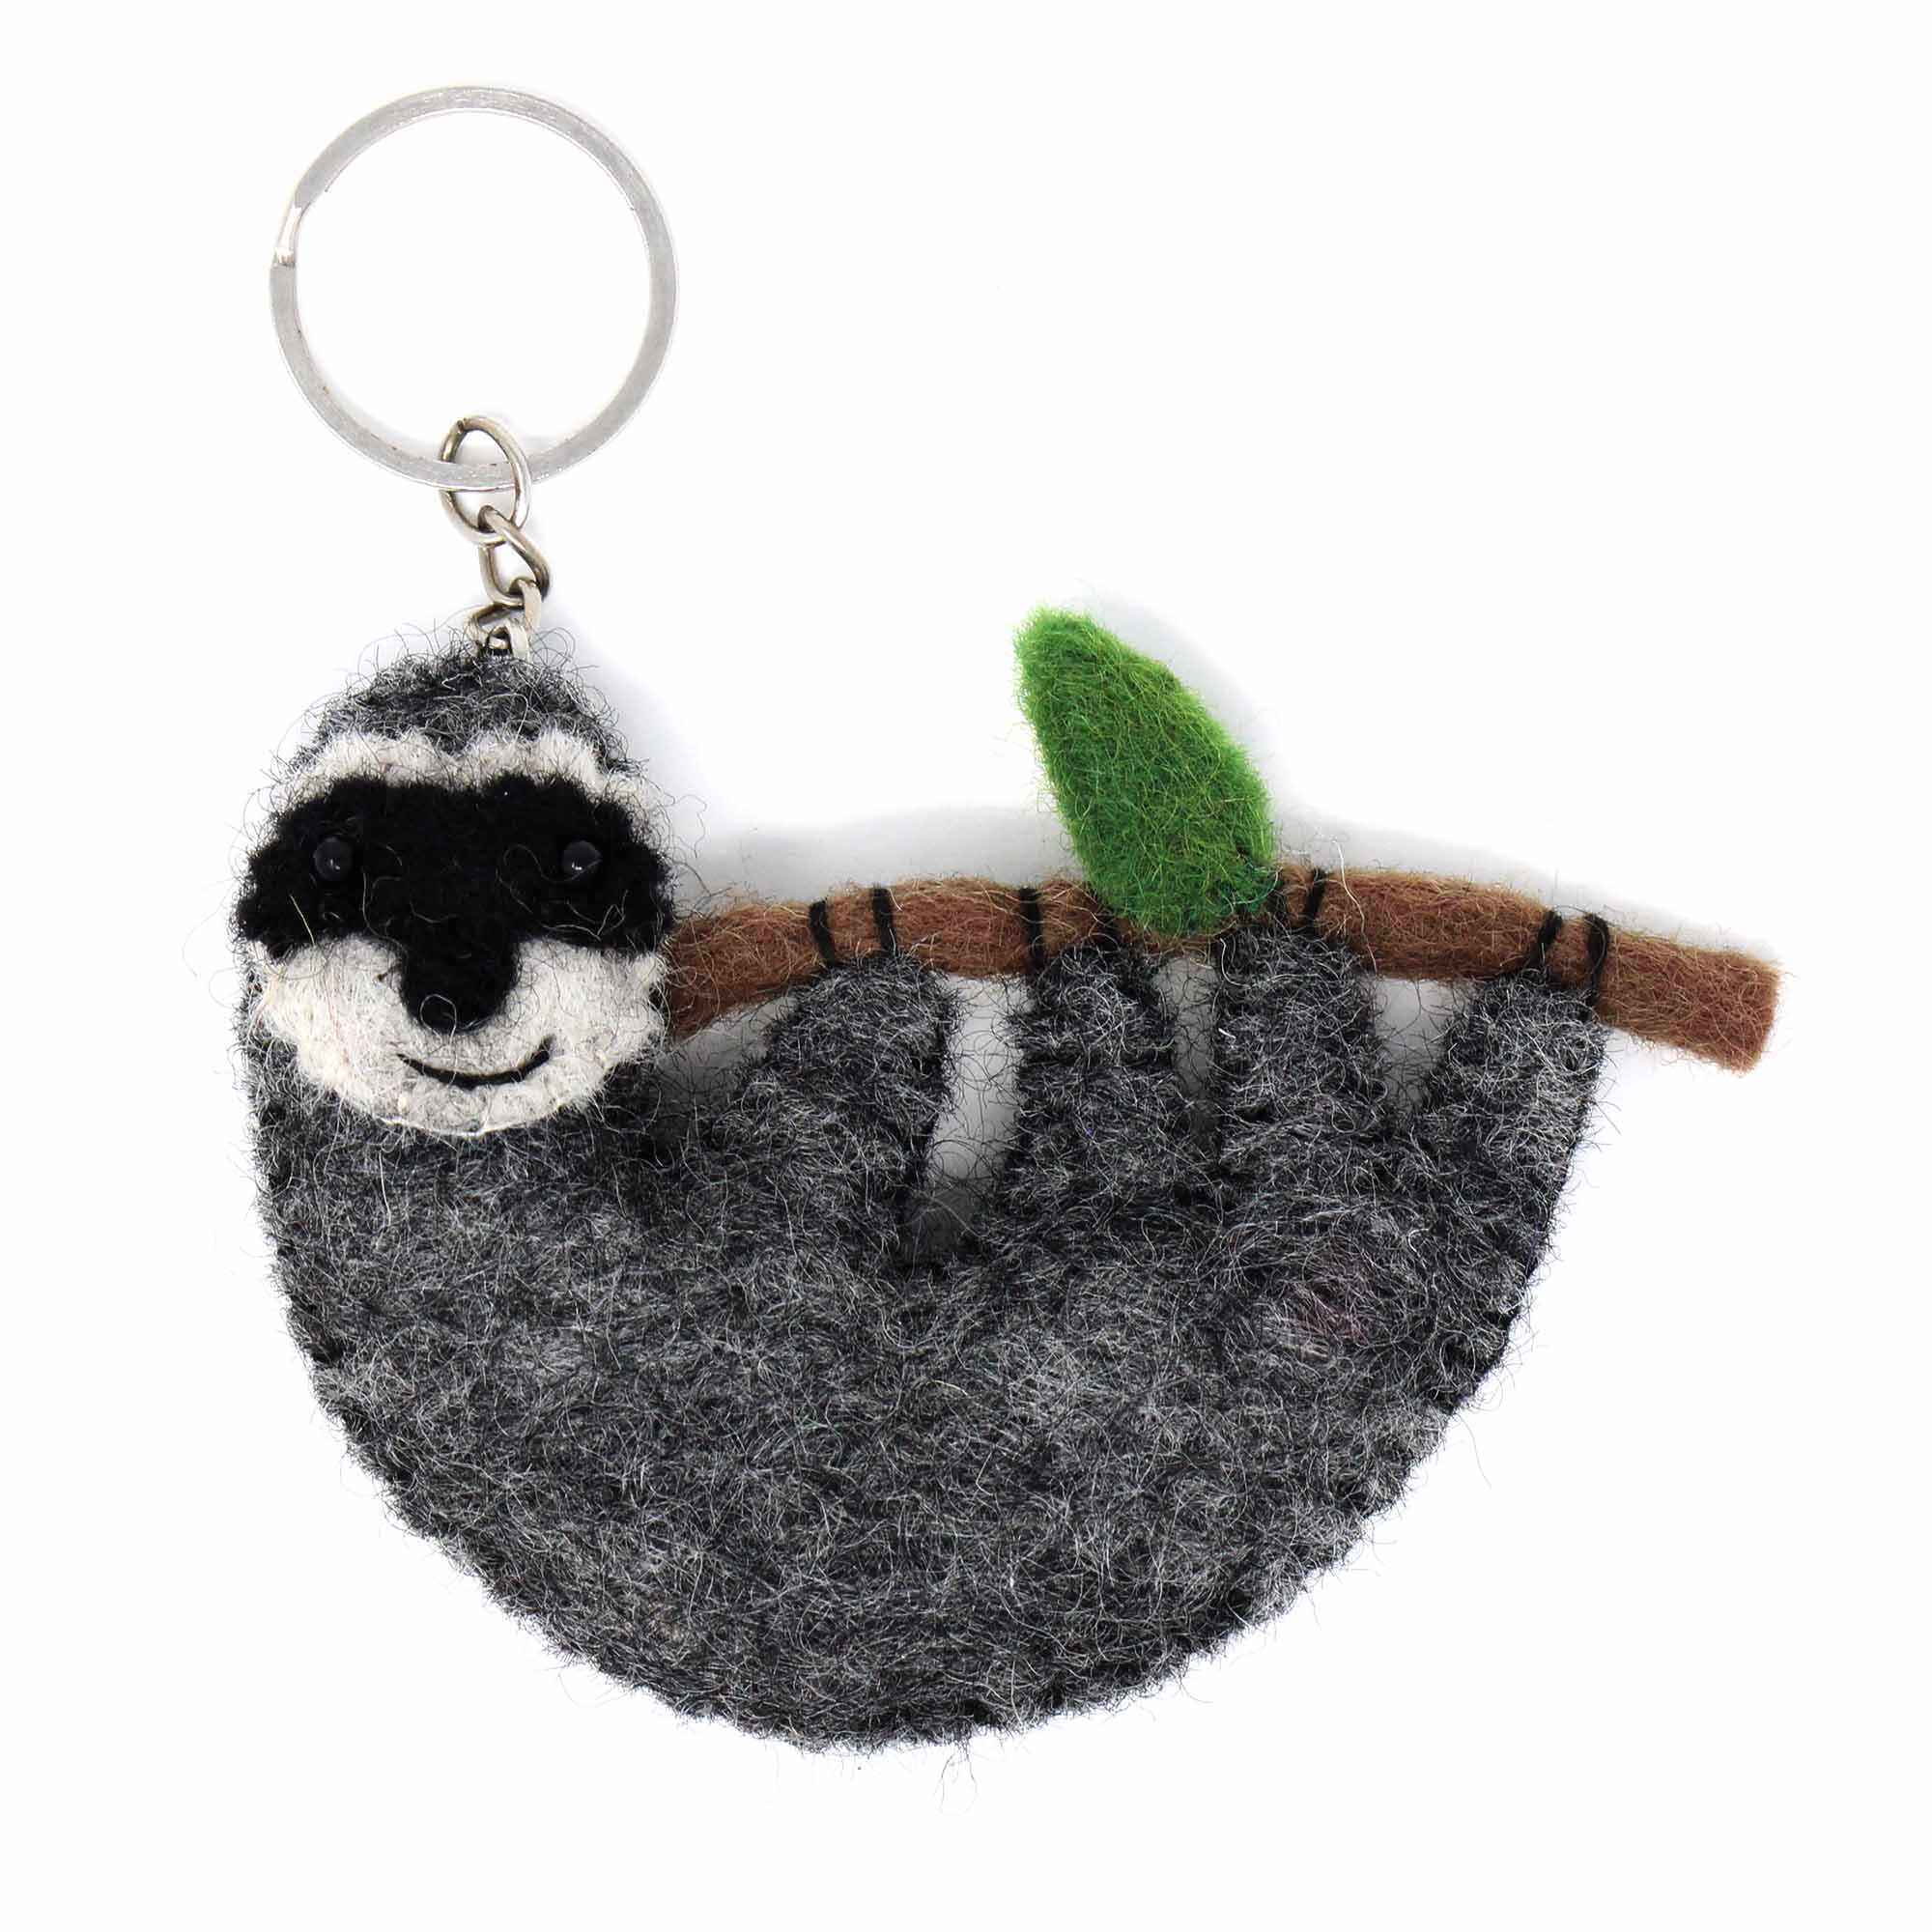 Hand Crafted Felt from Nepal: Key Chain, Sloth - Global Groove (A)